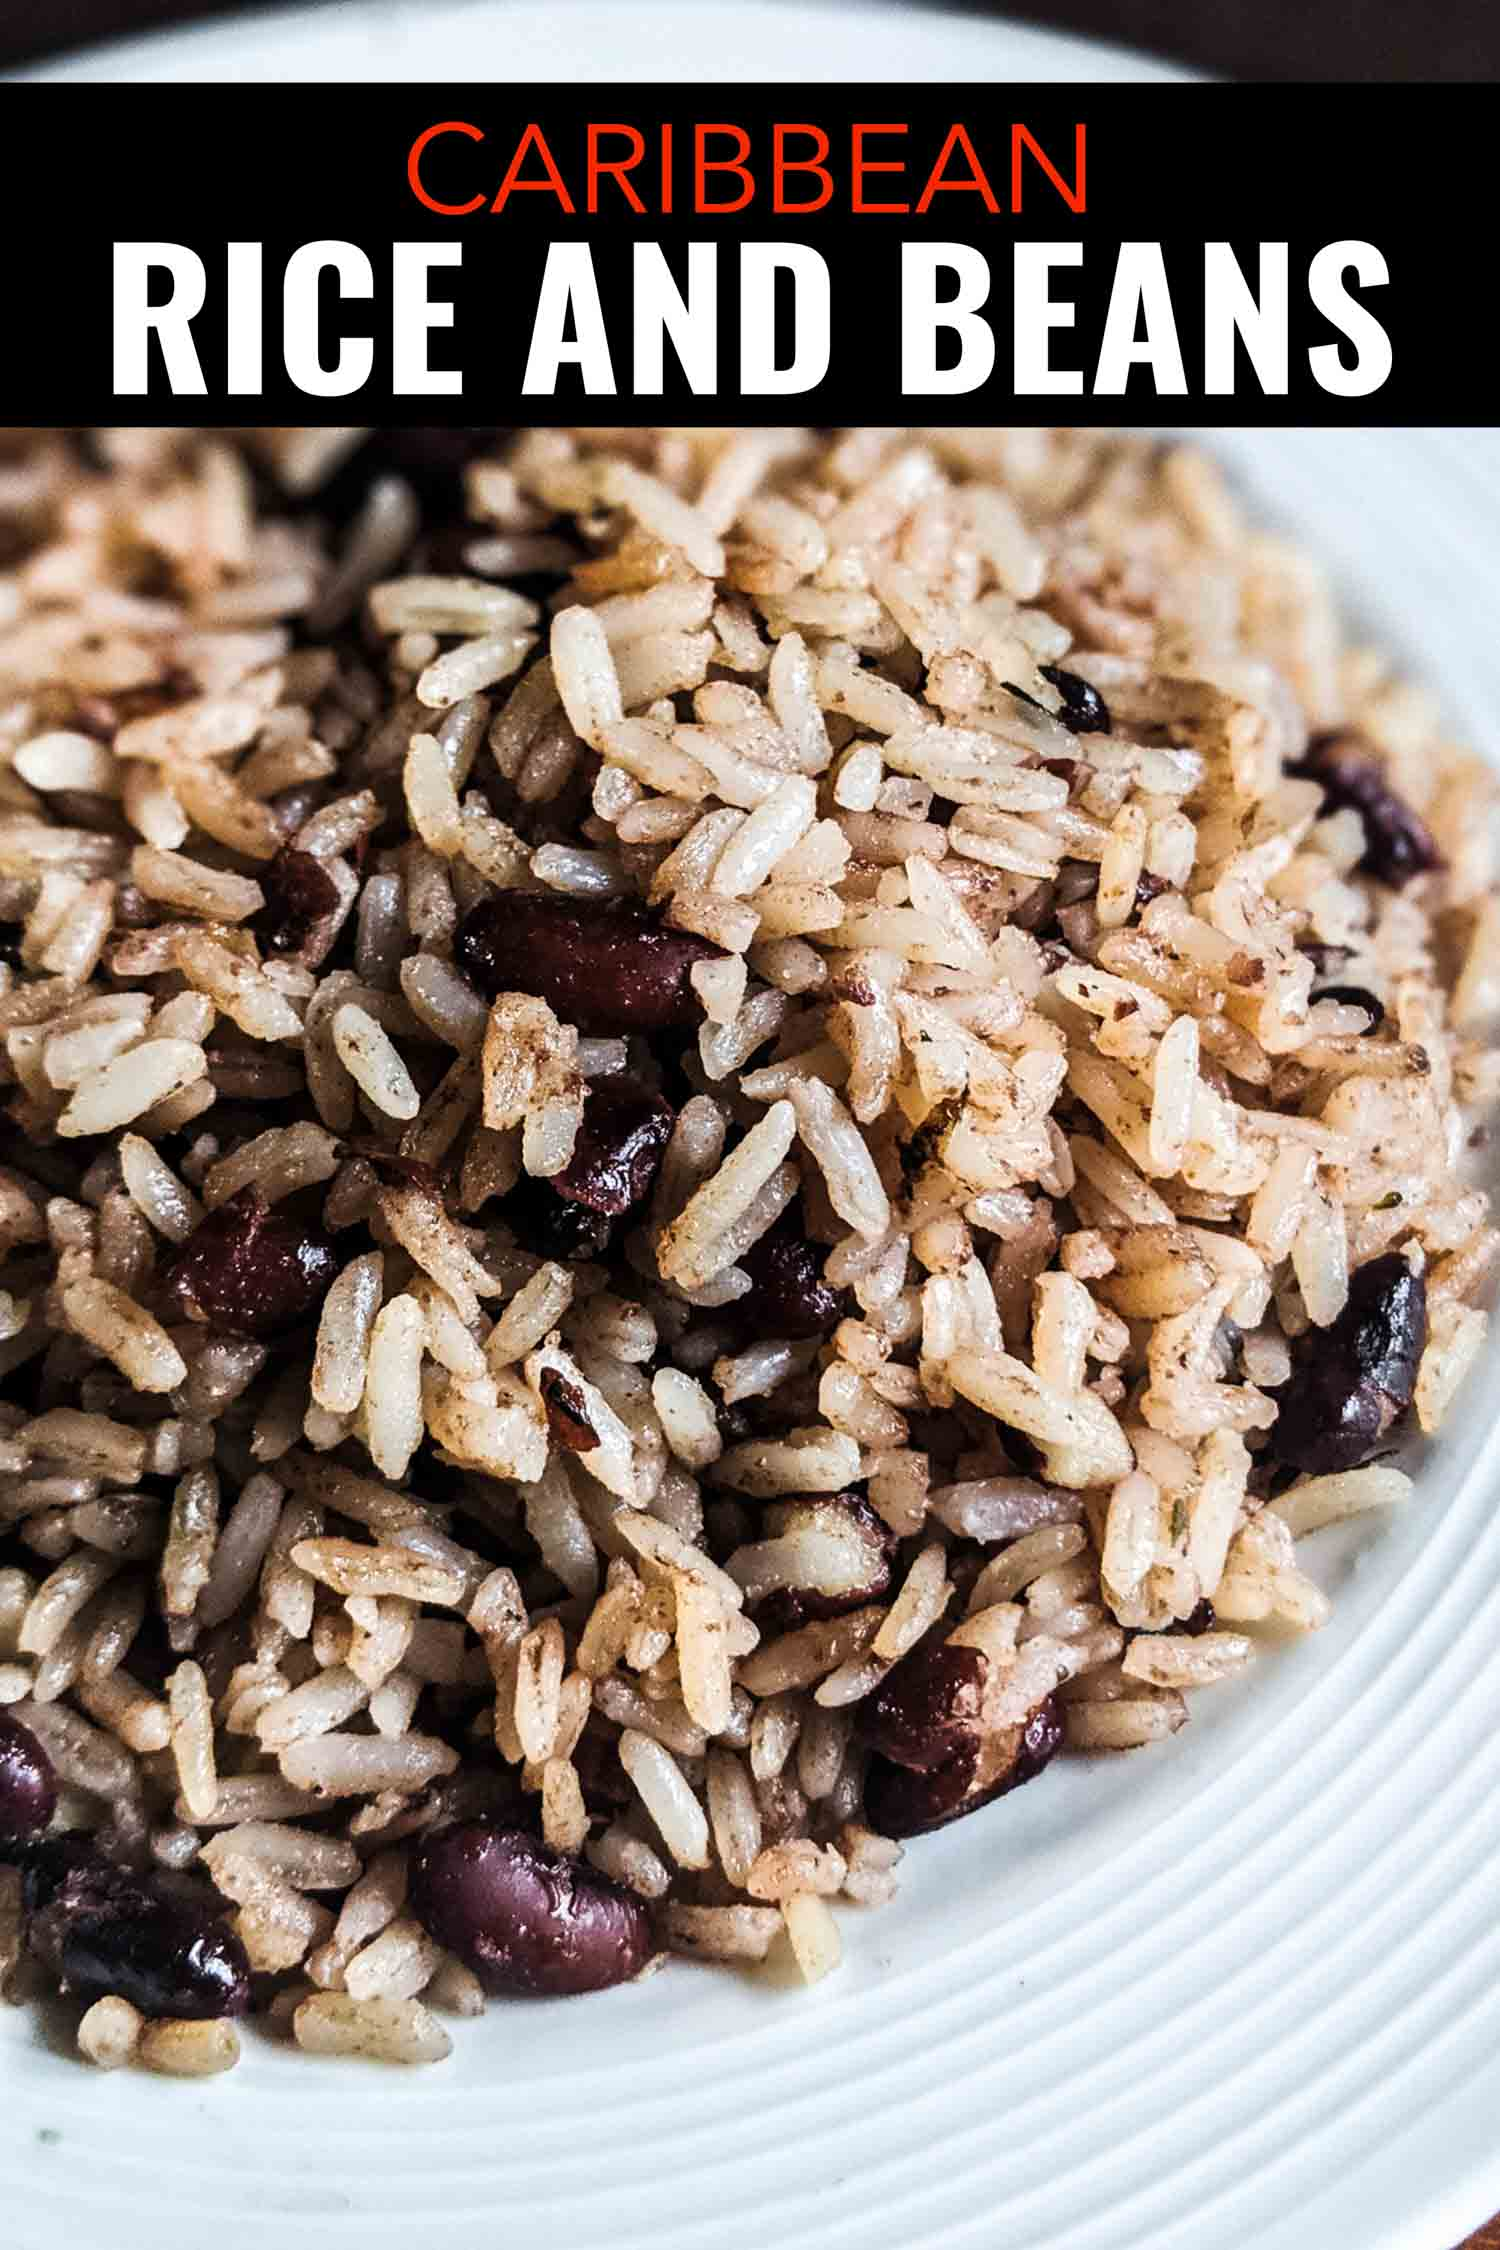 Easy Caribbean beans and rice recipe with coconut milk from southern Costa Rica. #Vegan #vegetarian